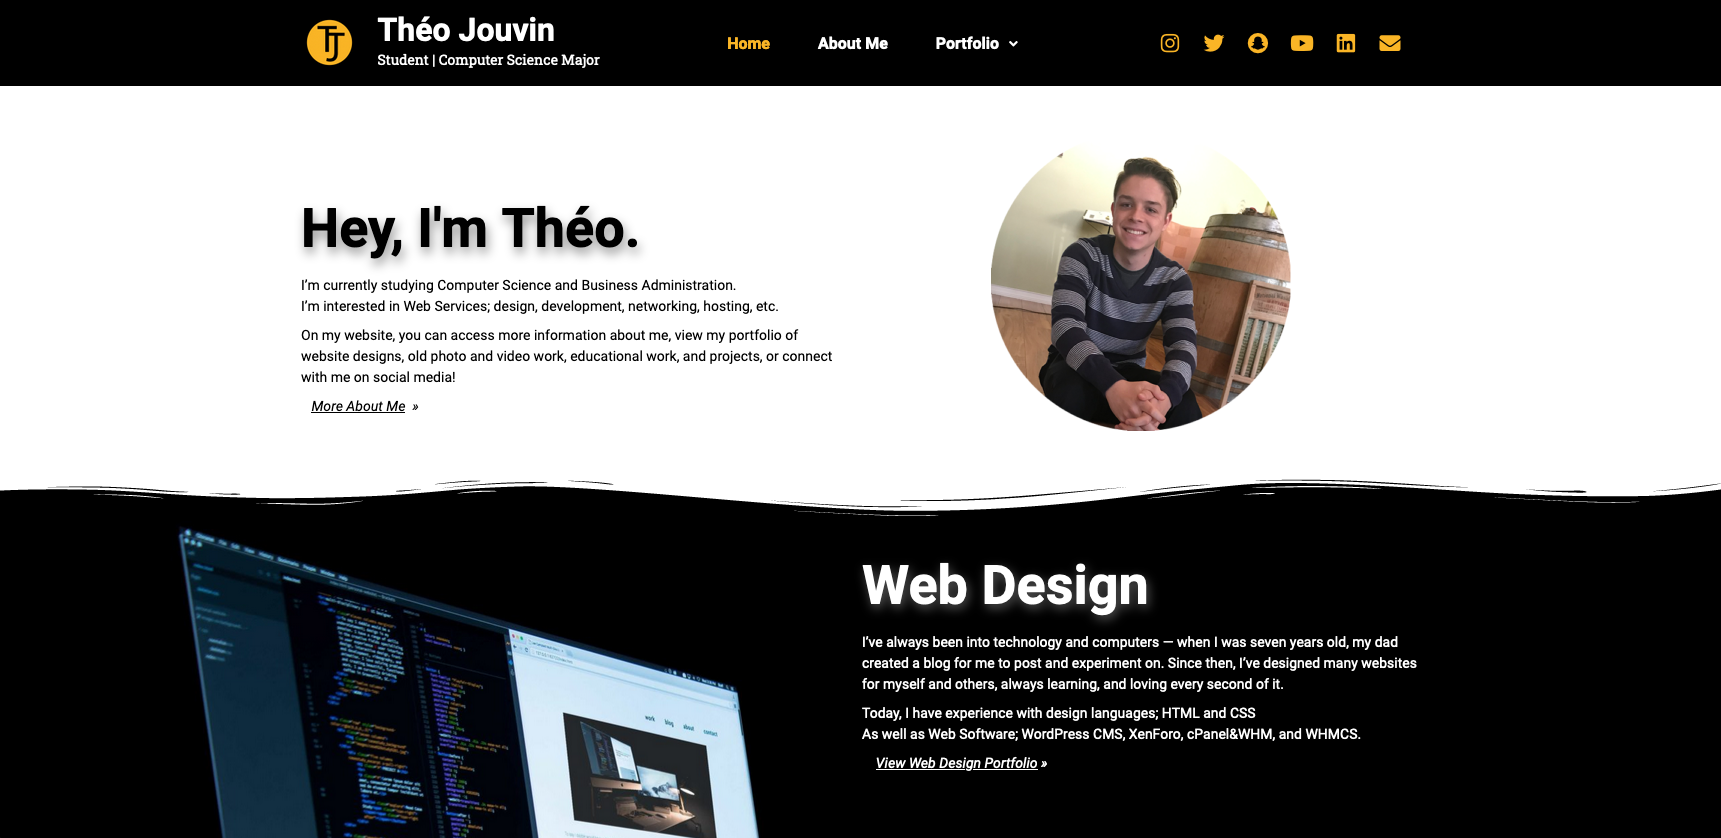 Personal Site Main Page (1 of 3)